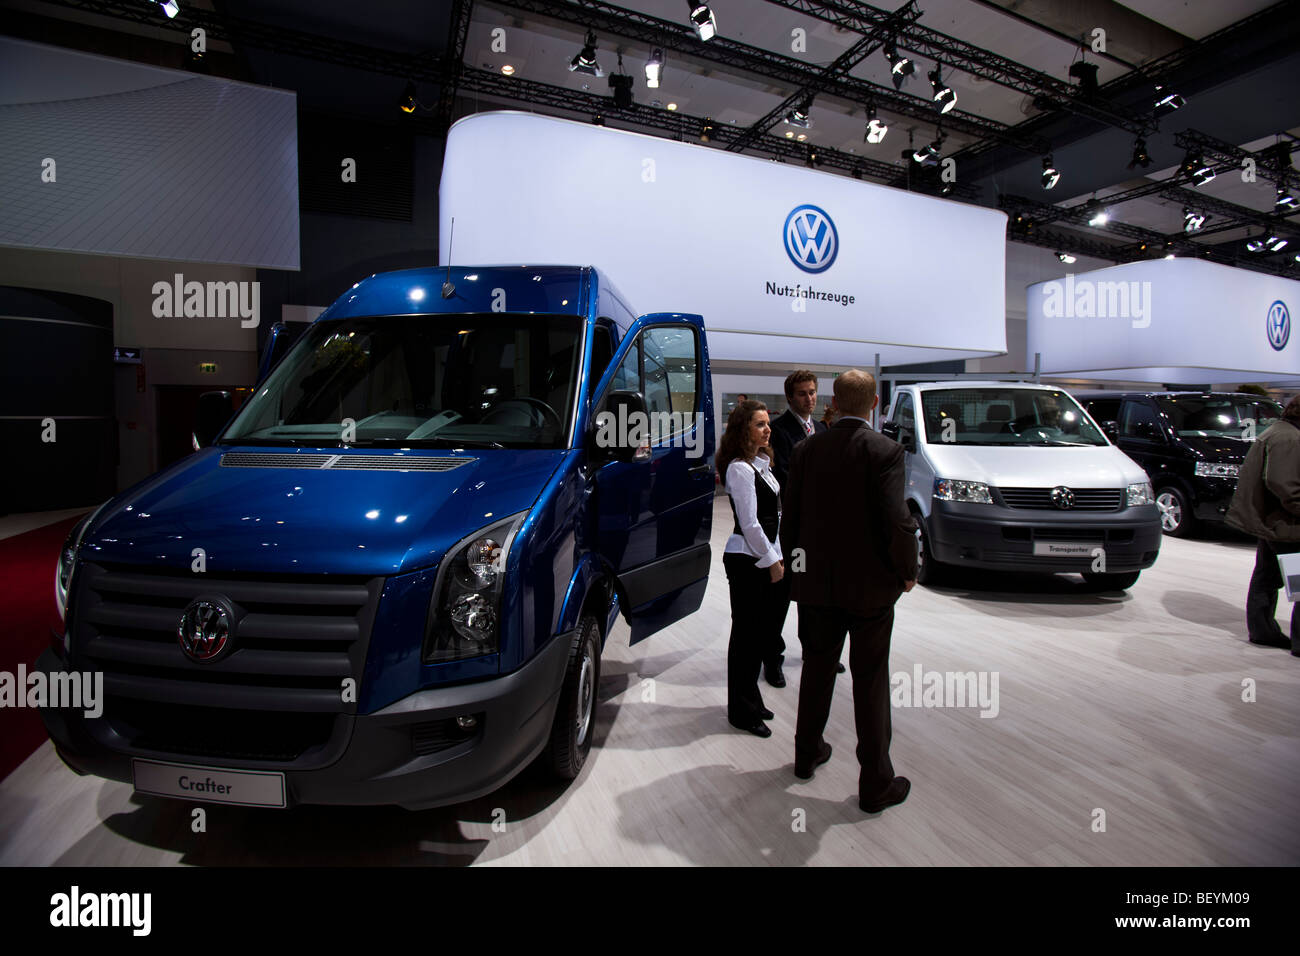 VW commercial vehicles are seen at an automobile show of the Volkswagen AG in Hamburg, Germany. - Stock Image